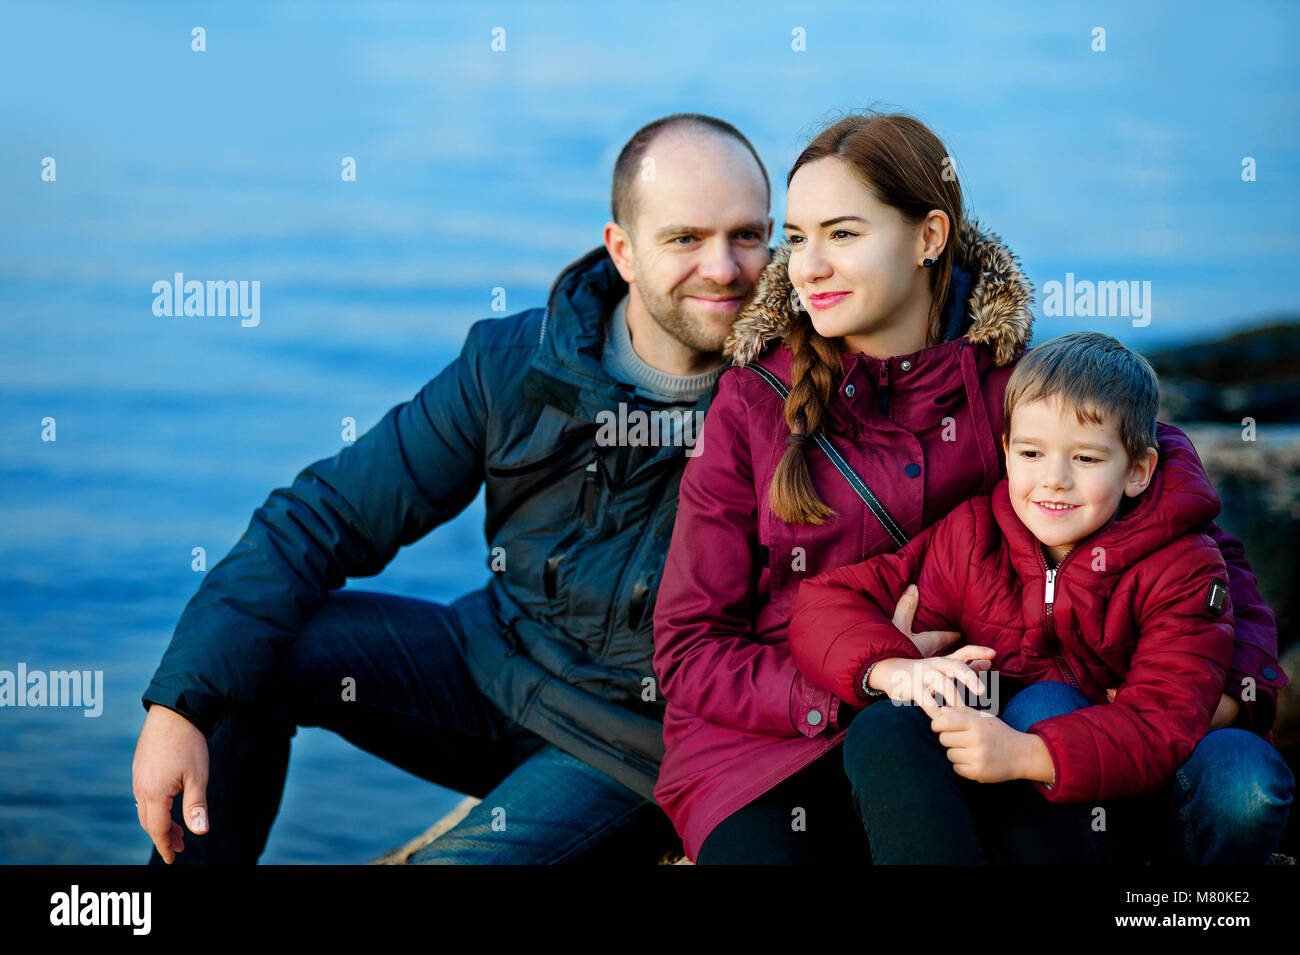 family mom, dad and son sitting on the beach by the sea. Season - spring, autumn. The concept of family happiness - Stock Image